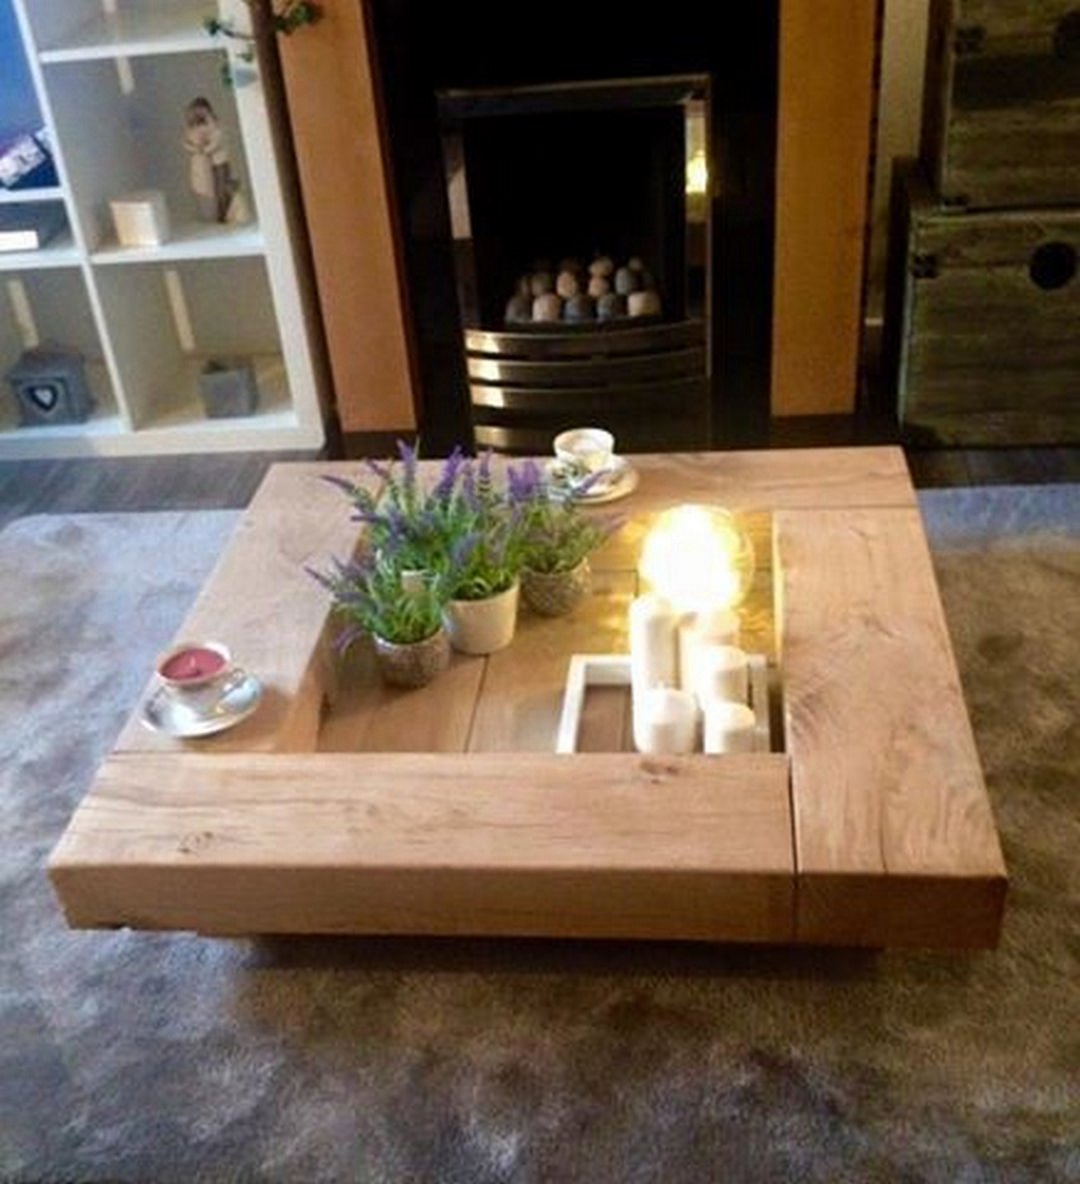 84 Wonderful Coffee Table Design Ideas Https Www Futuristarchitecture